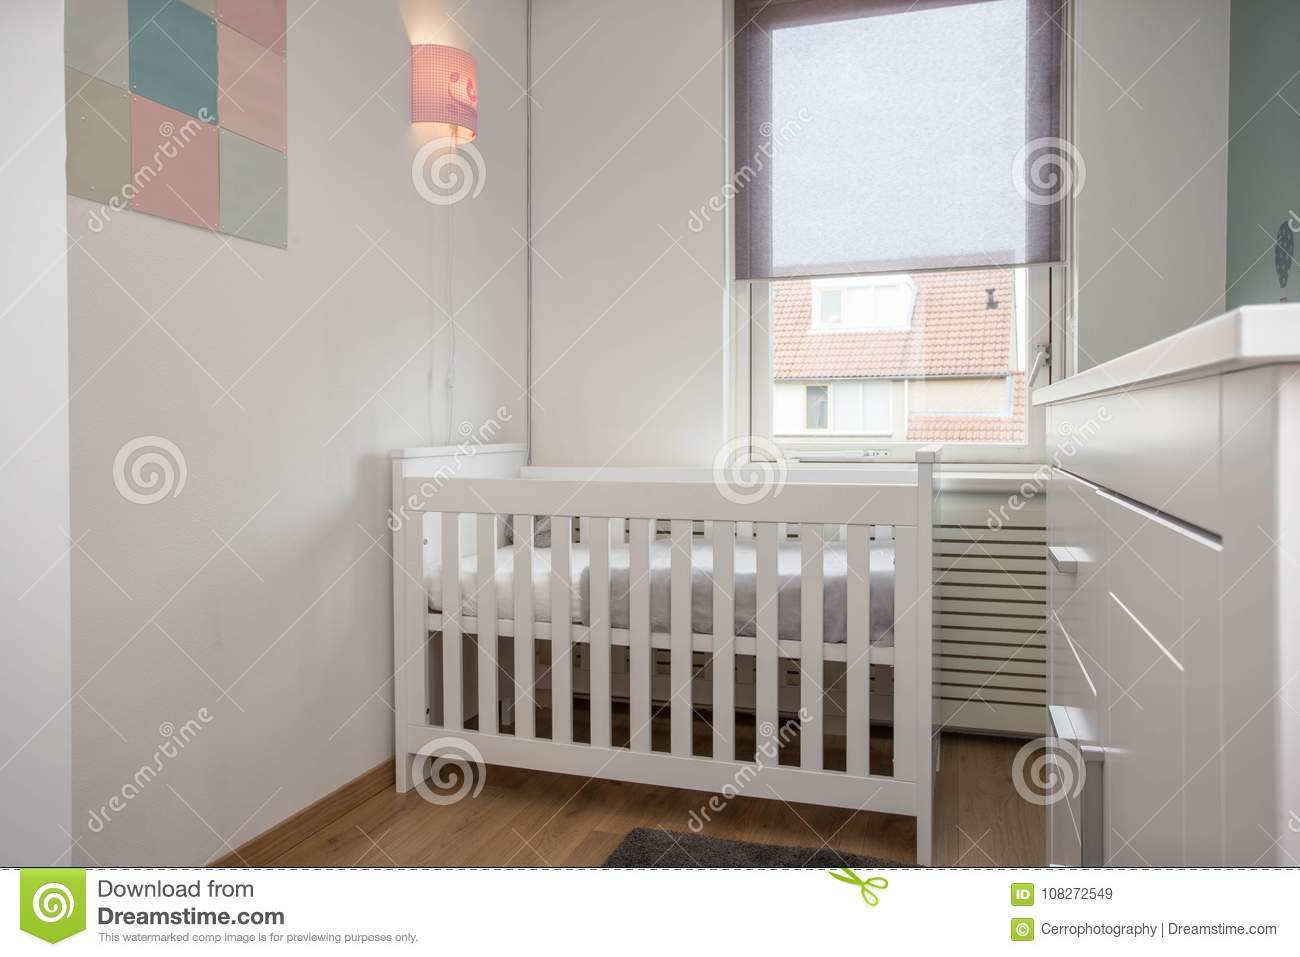 Baby Room Interior Modern Style With Baby Crib Stock Image ...